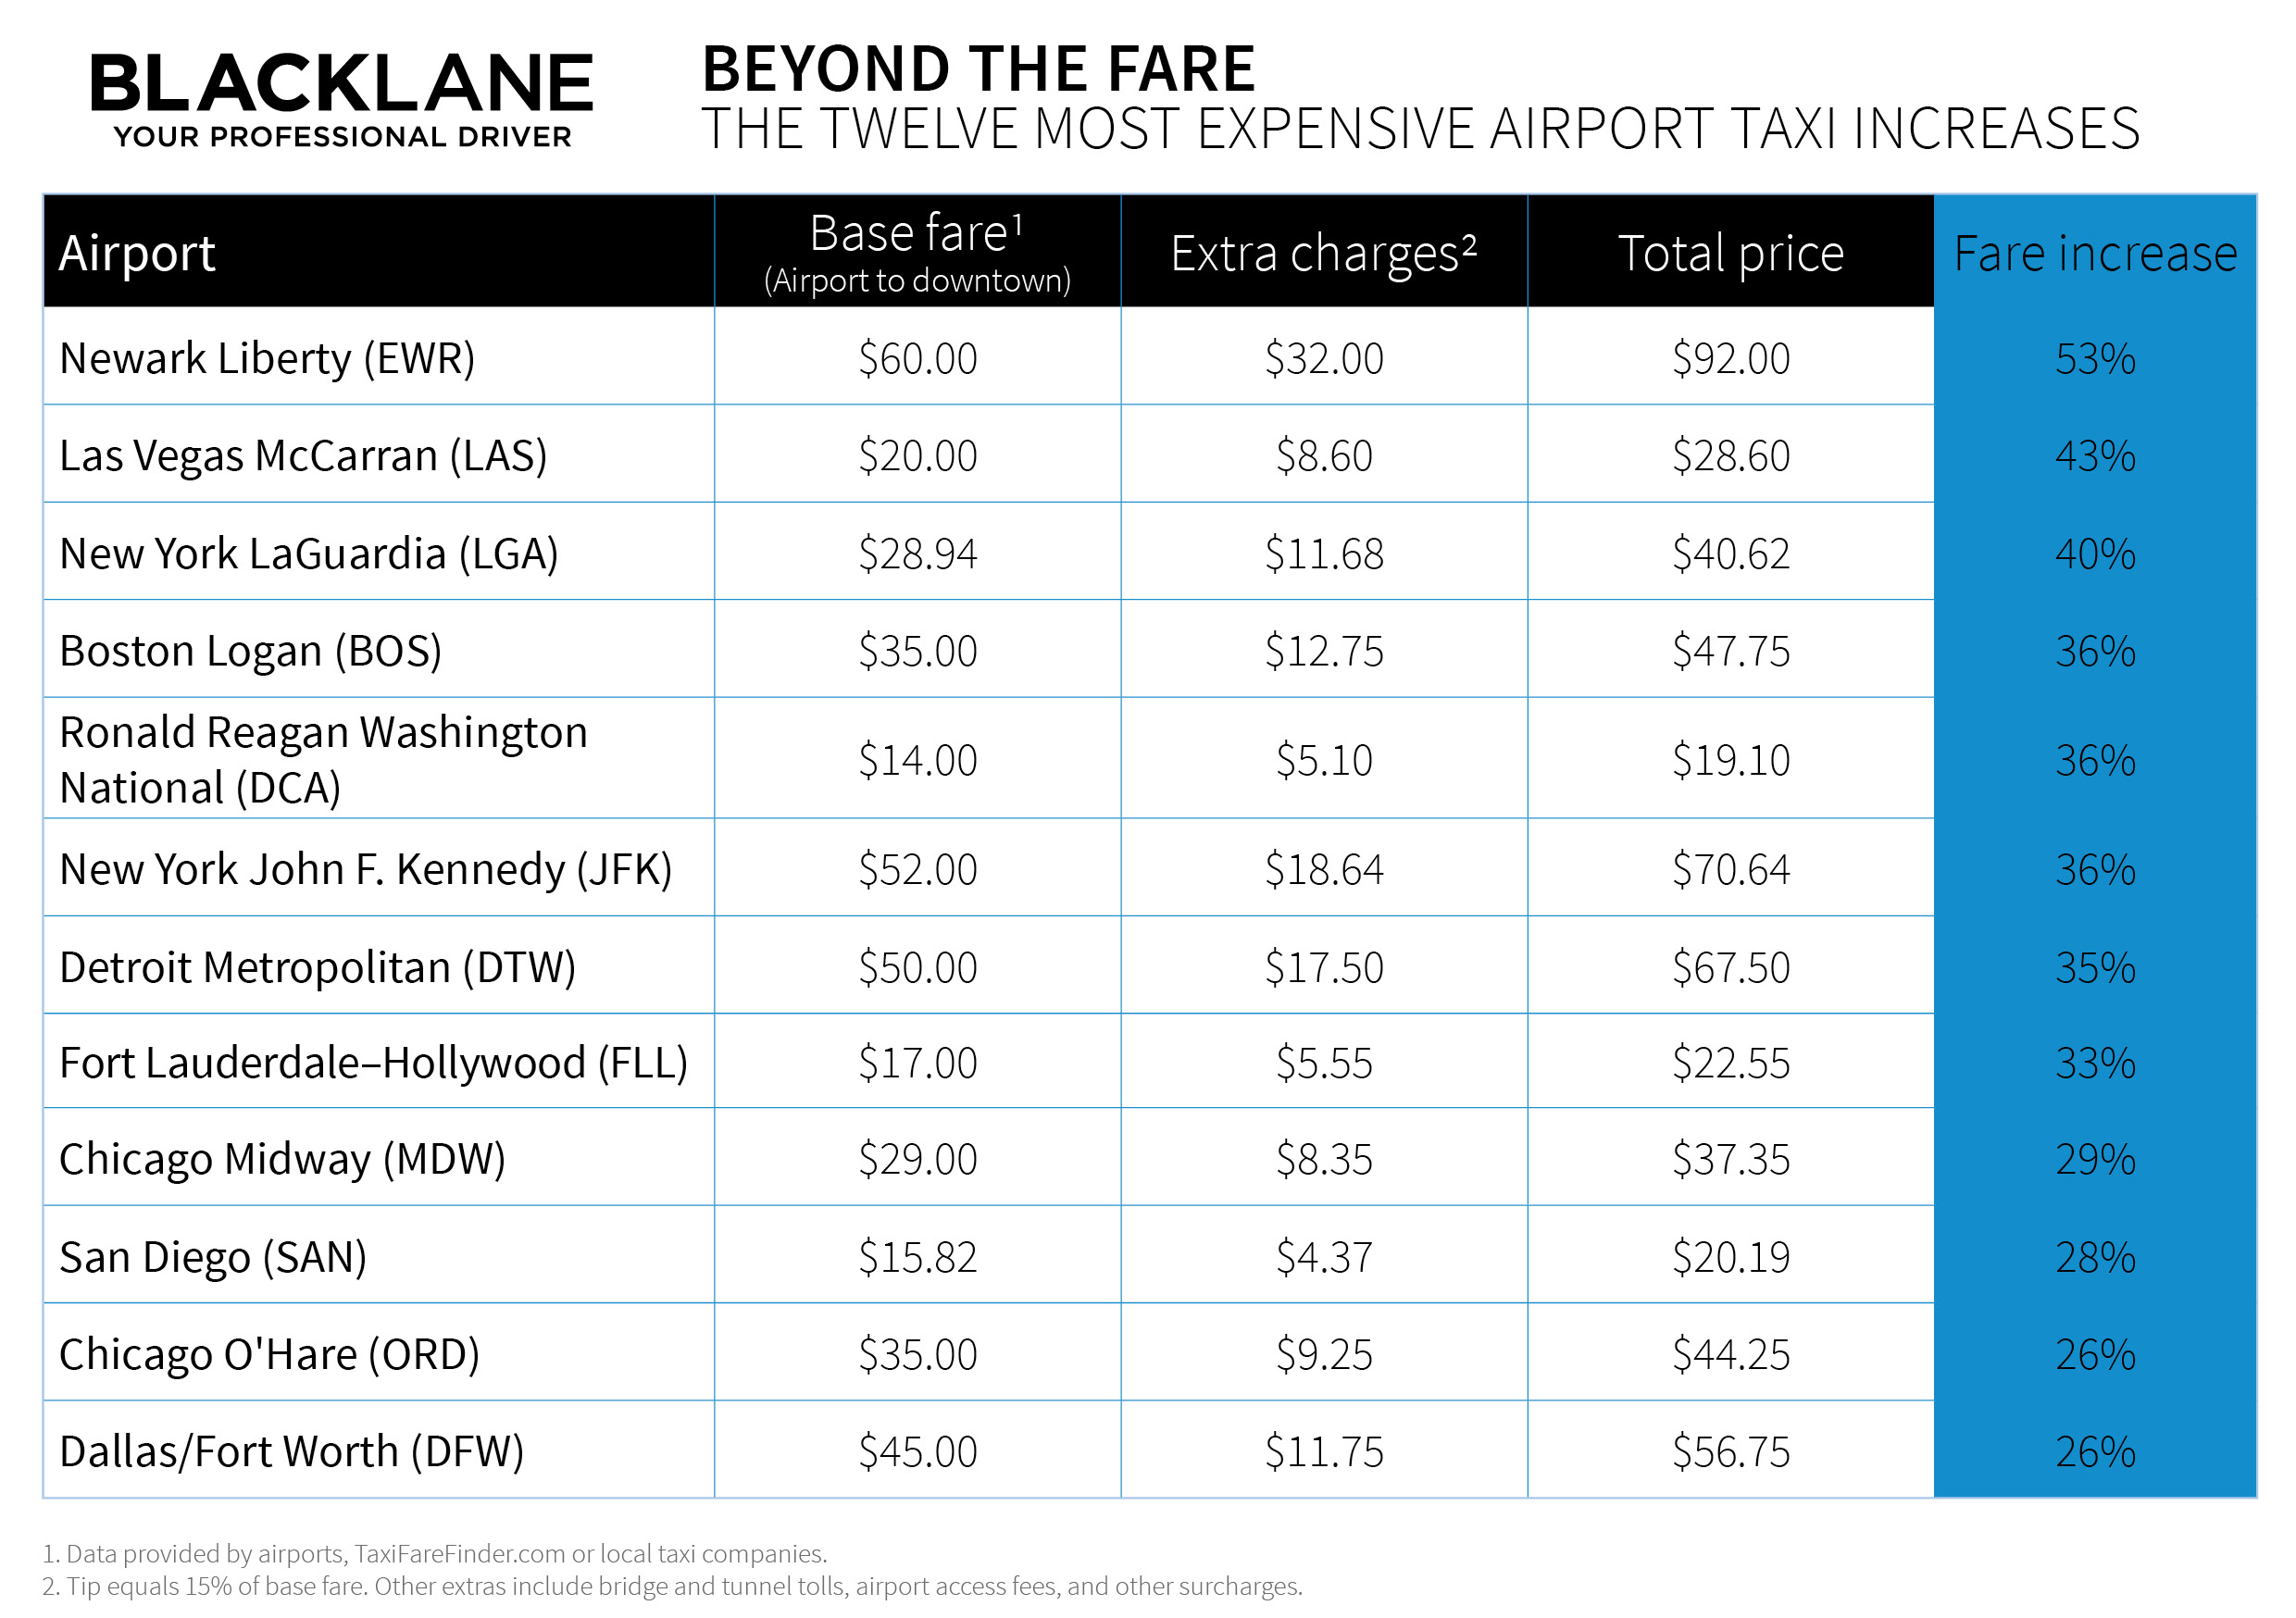 U.S. Airport Taxi Increases